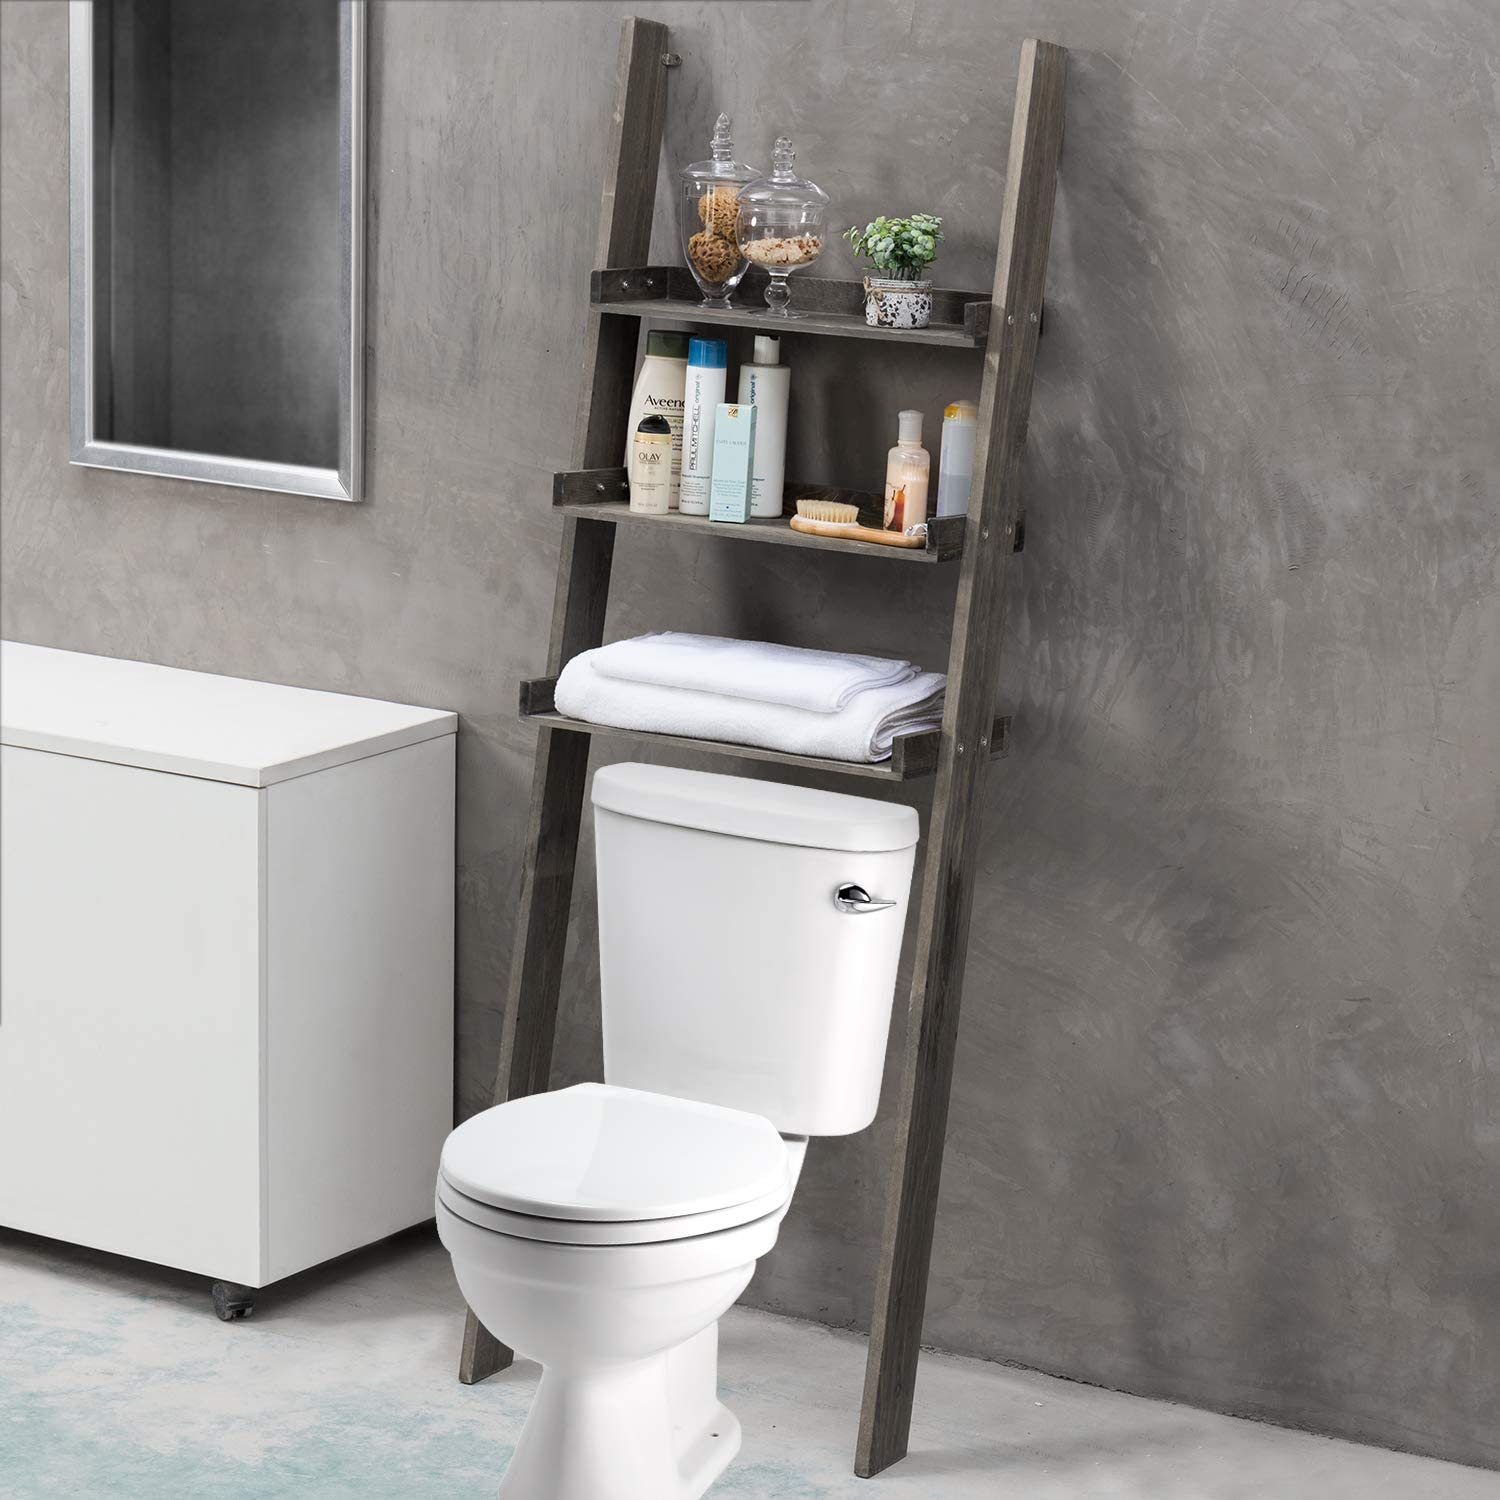 MyGift 3-Tier Gray Wood Over-The-Toilet Leaning Bathroom Ladder Shelf